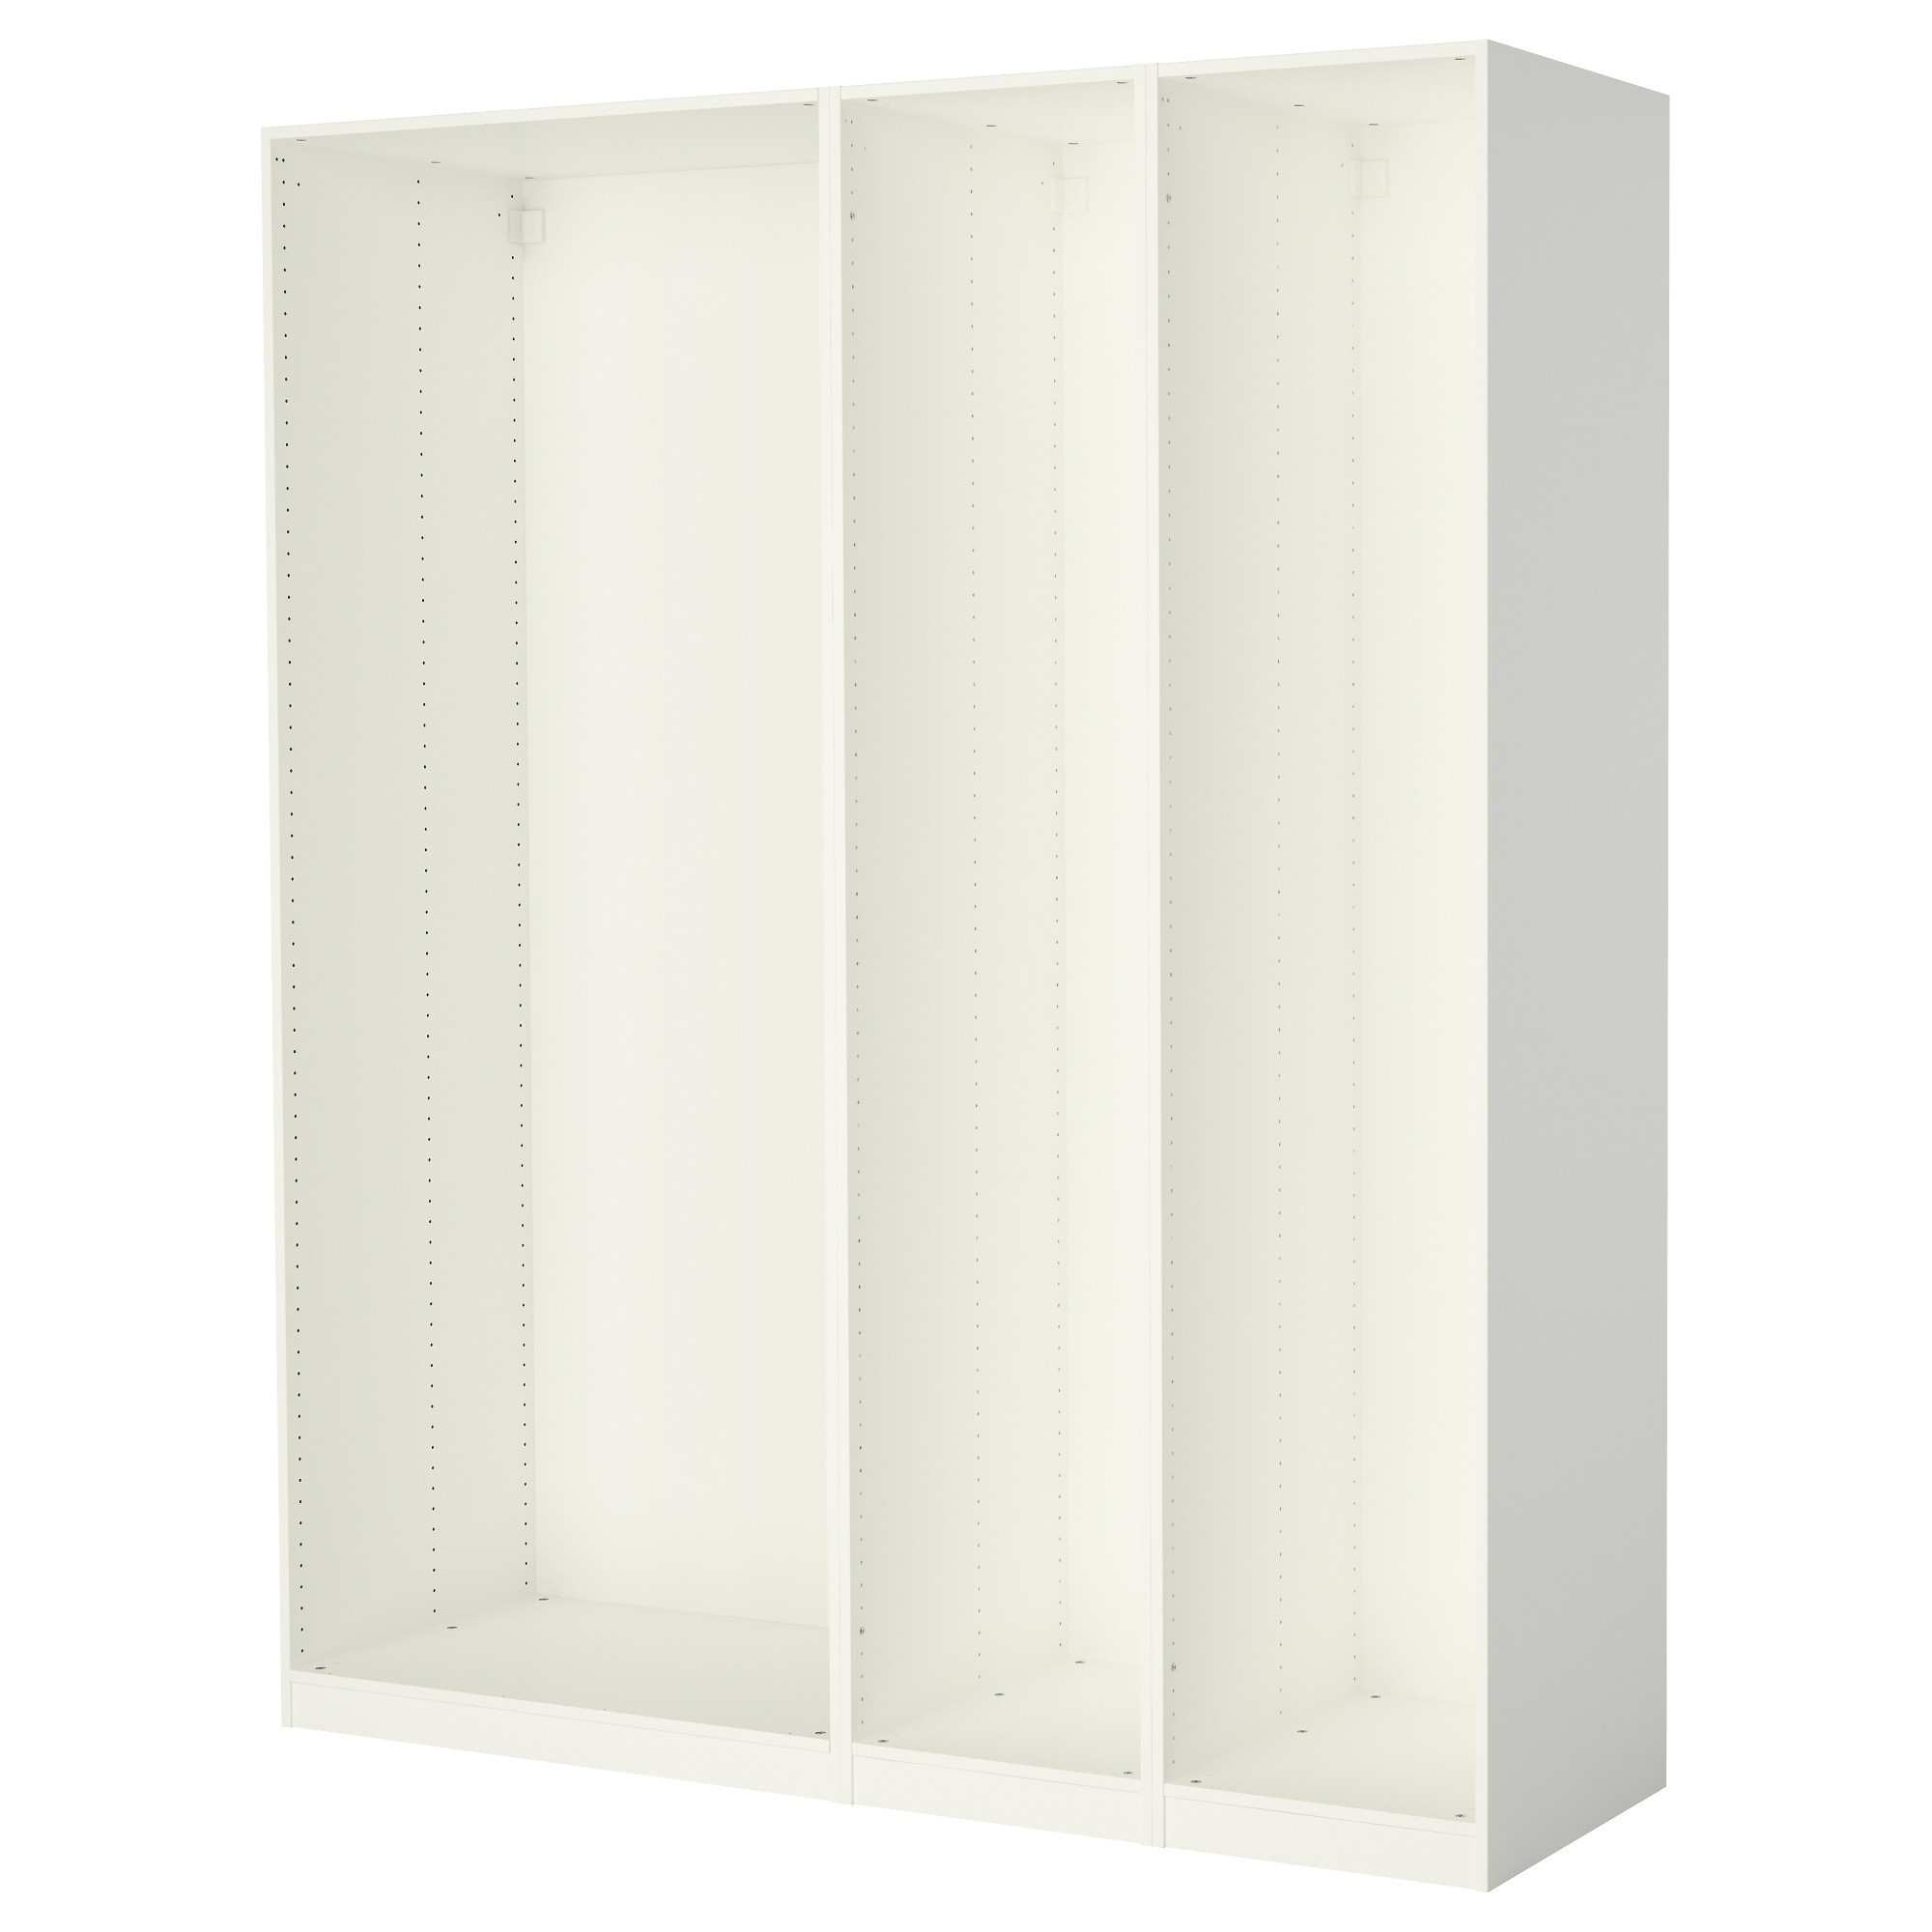 Pictures and Frames Inspirational Ikea Pax Wardrobe Frame White ...